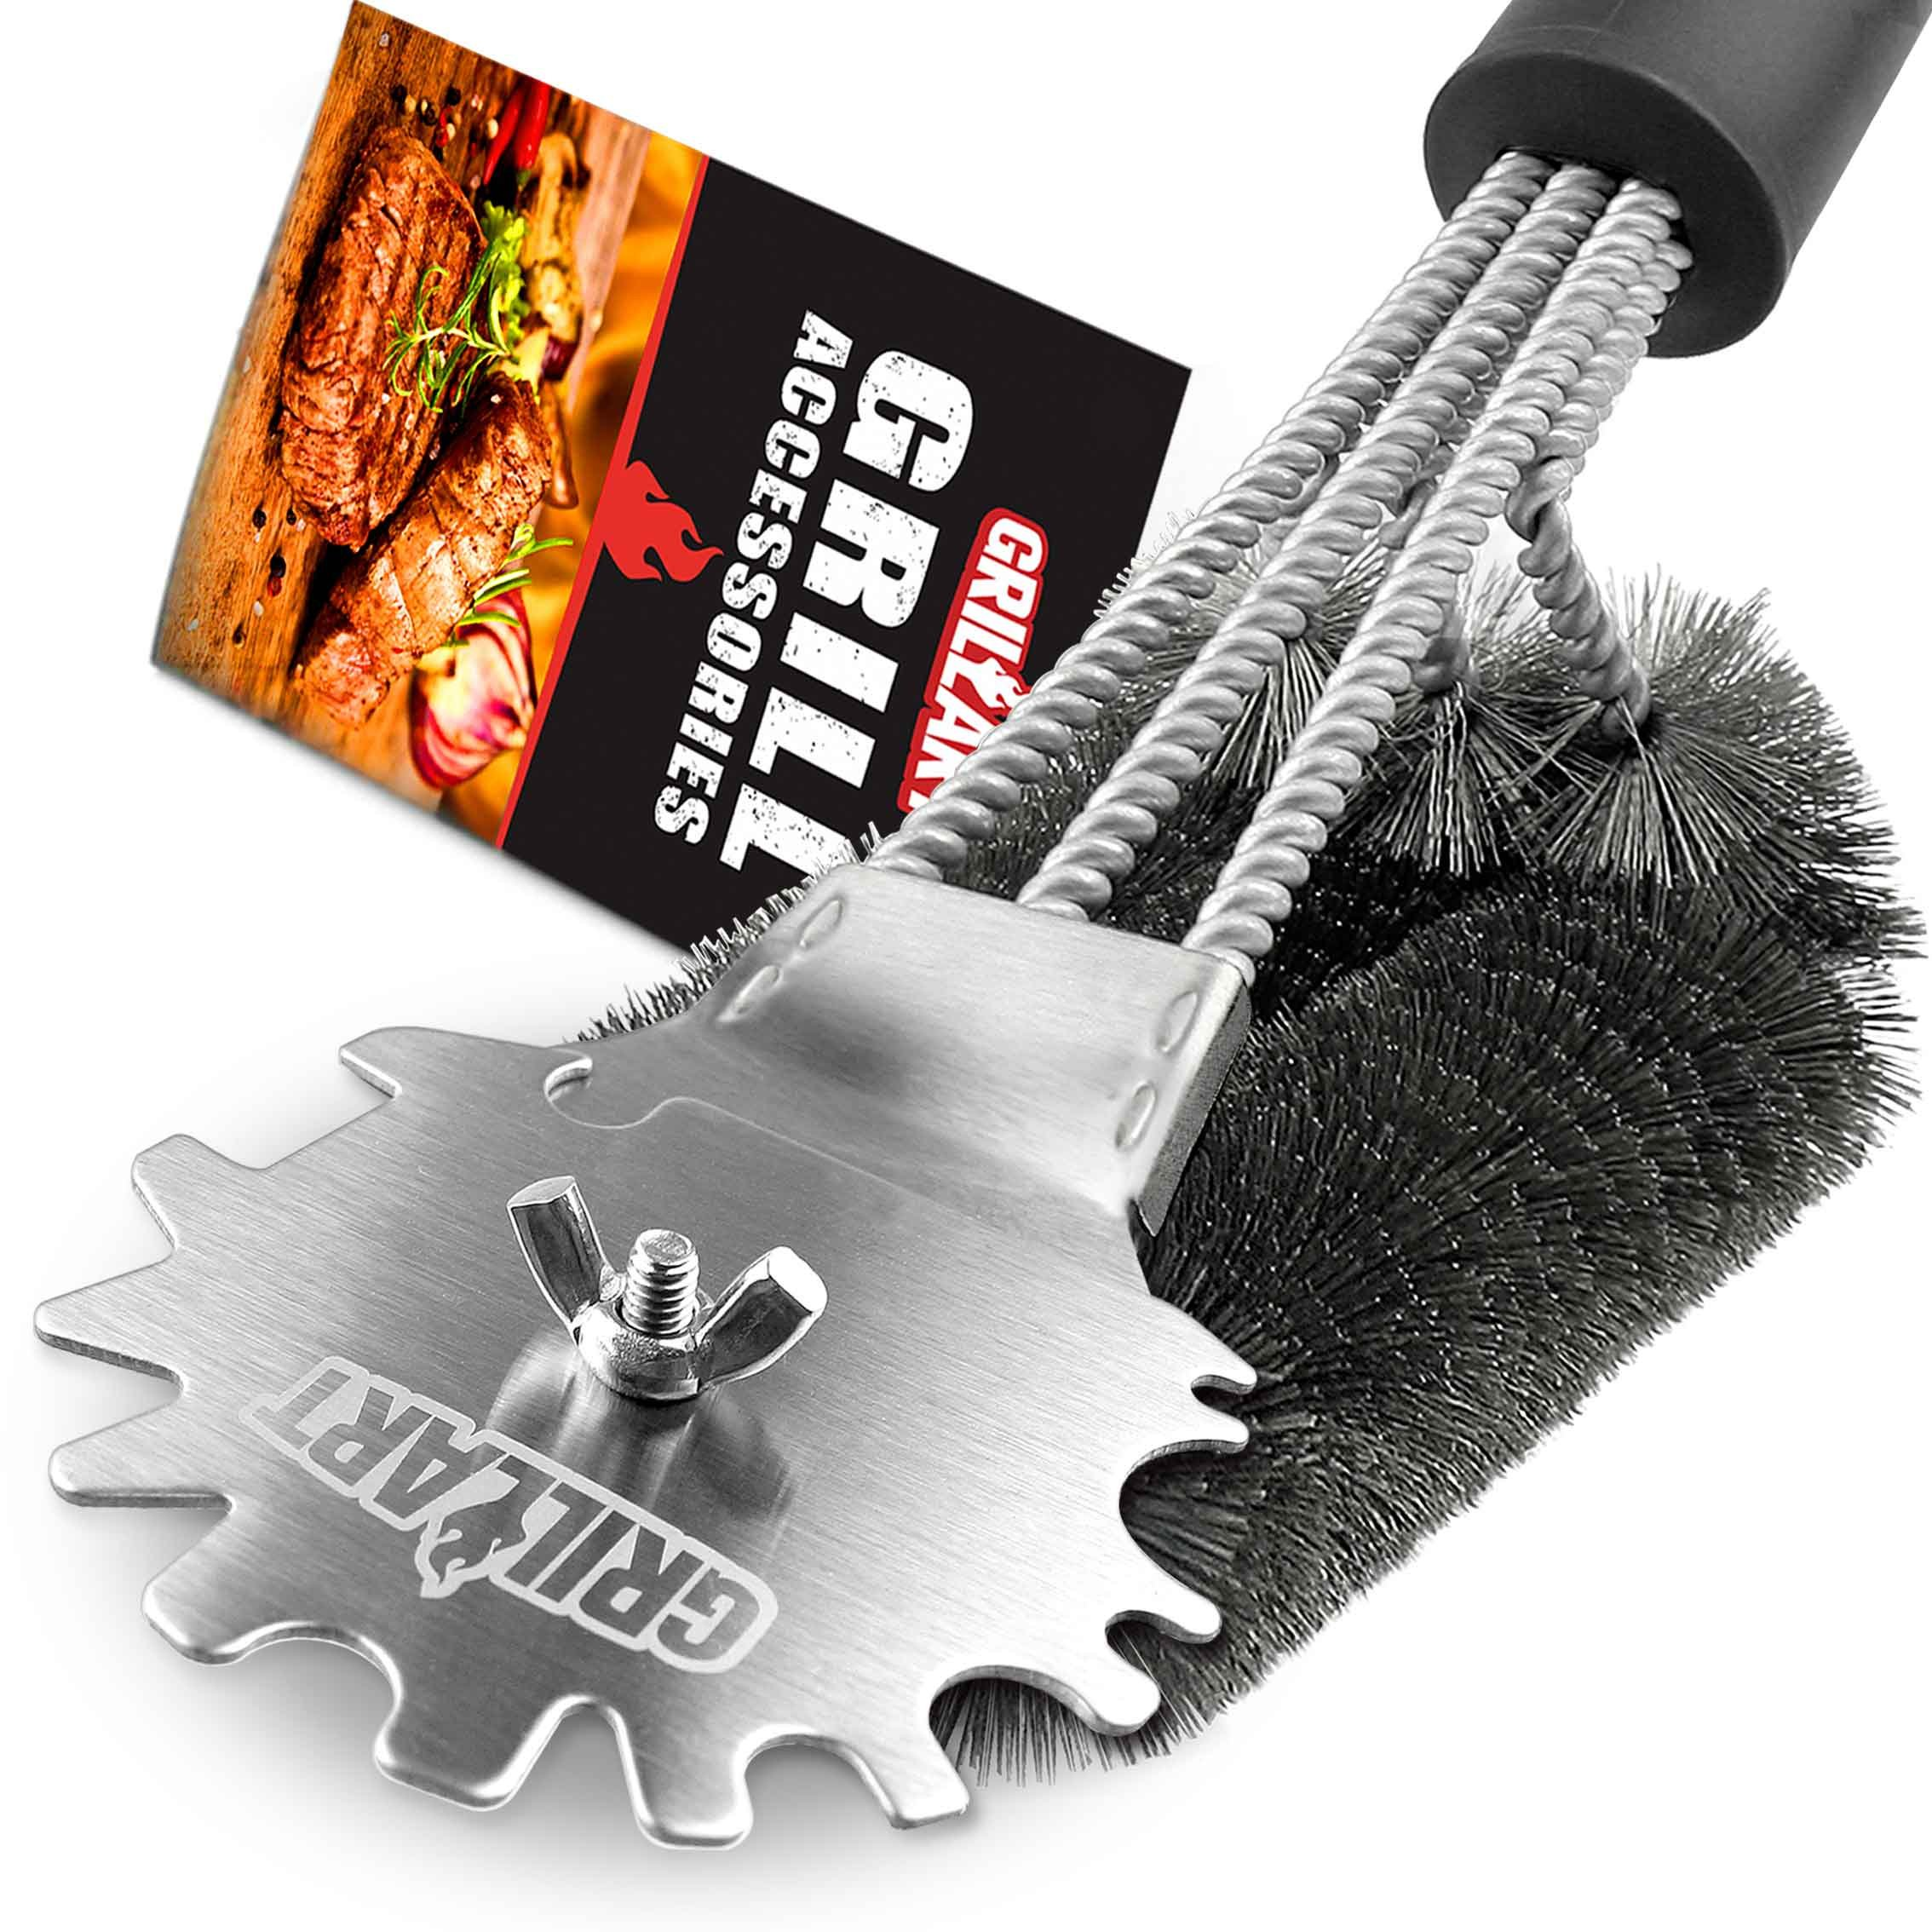 Grill Brush and Scraper Universal Fit - Adjustable BBQ Grill Accessories Cleaning Kit - 12 Grooves Safe 18'' Stainless Steel Barbecue Grill Cleaner Wizard Tools for Weber Gas/Charcoal Grilling Grates